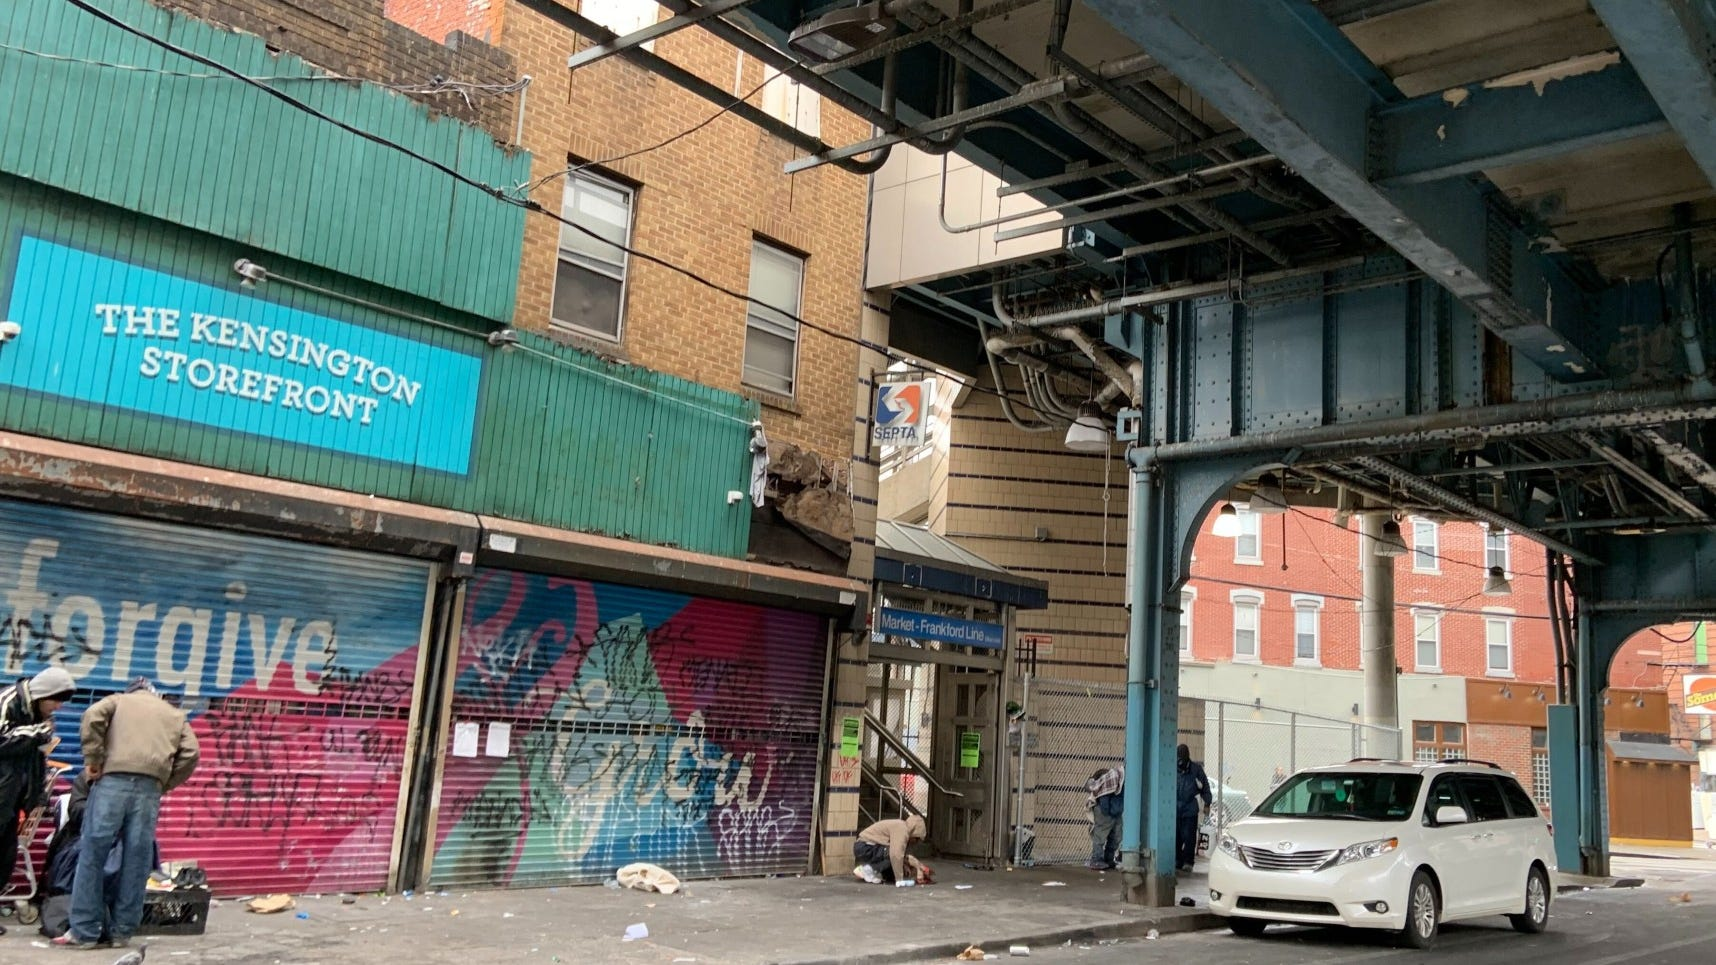 Neighbors concerned as SEPTA closes Somerset Station for repairs, plan protest